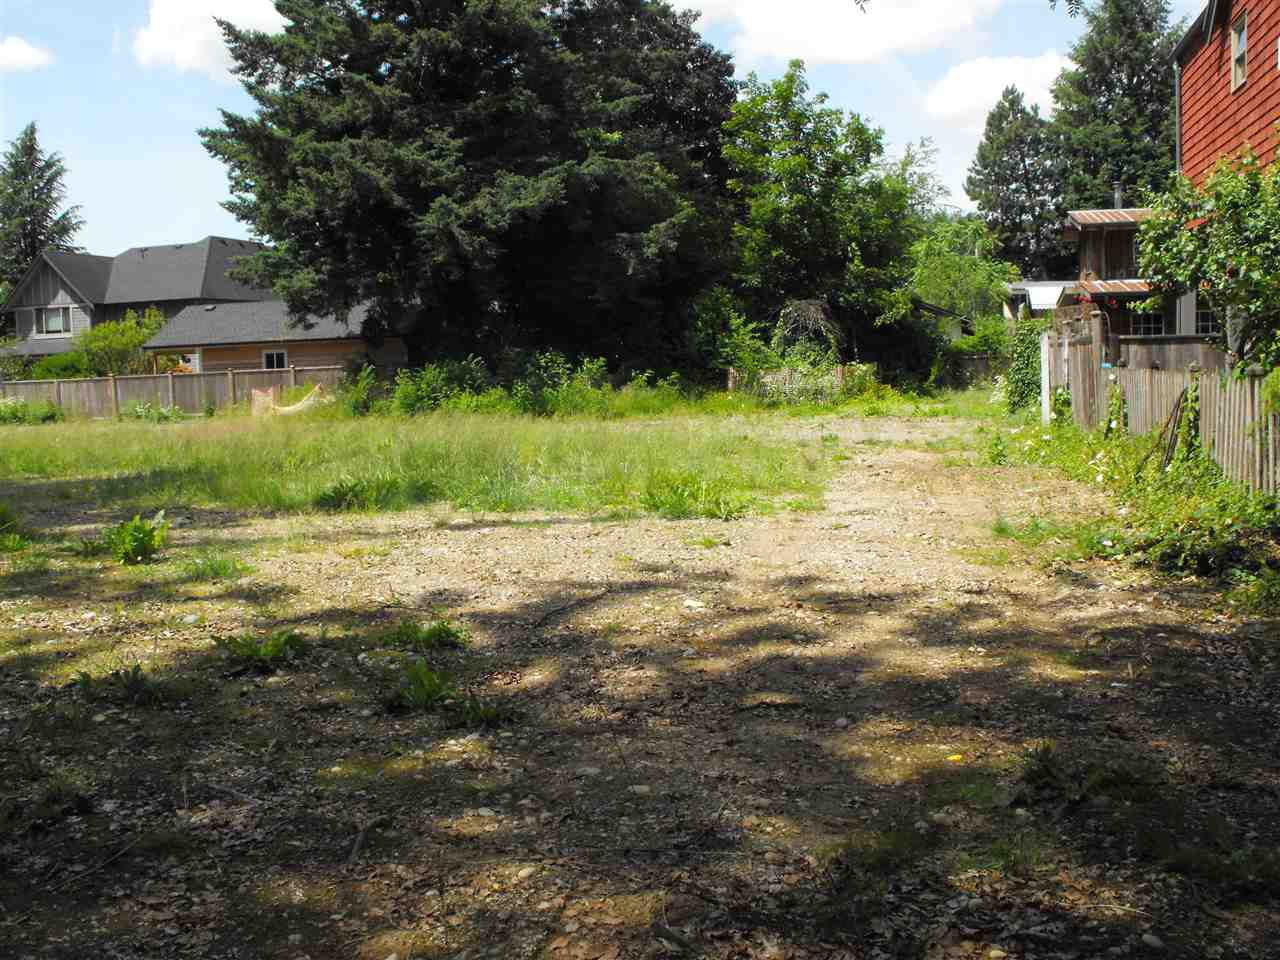 """Main Photo: 8901 GLOVER Road in Langley: Fort Langley Land for sale in """"Fort Langley"""" : MLS®# R2376132"""